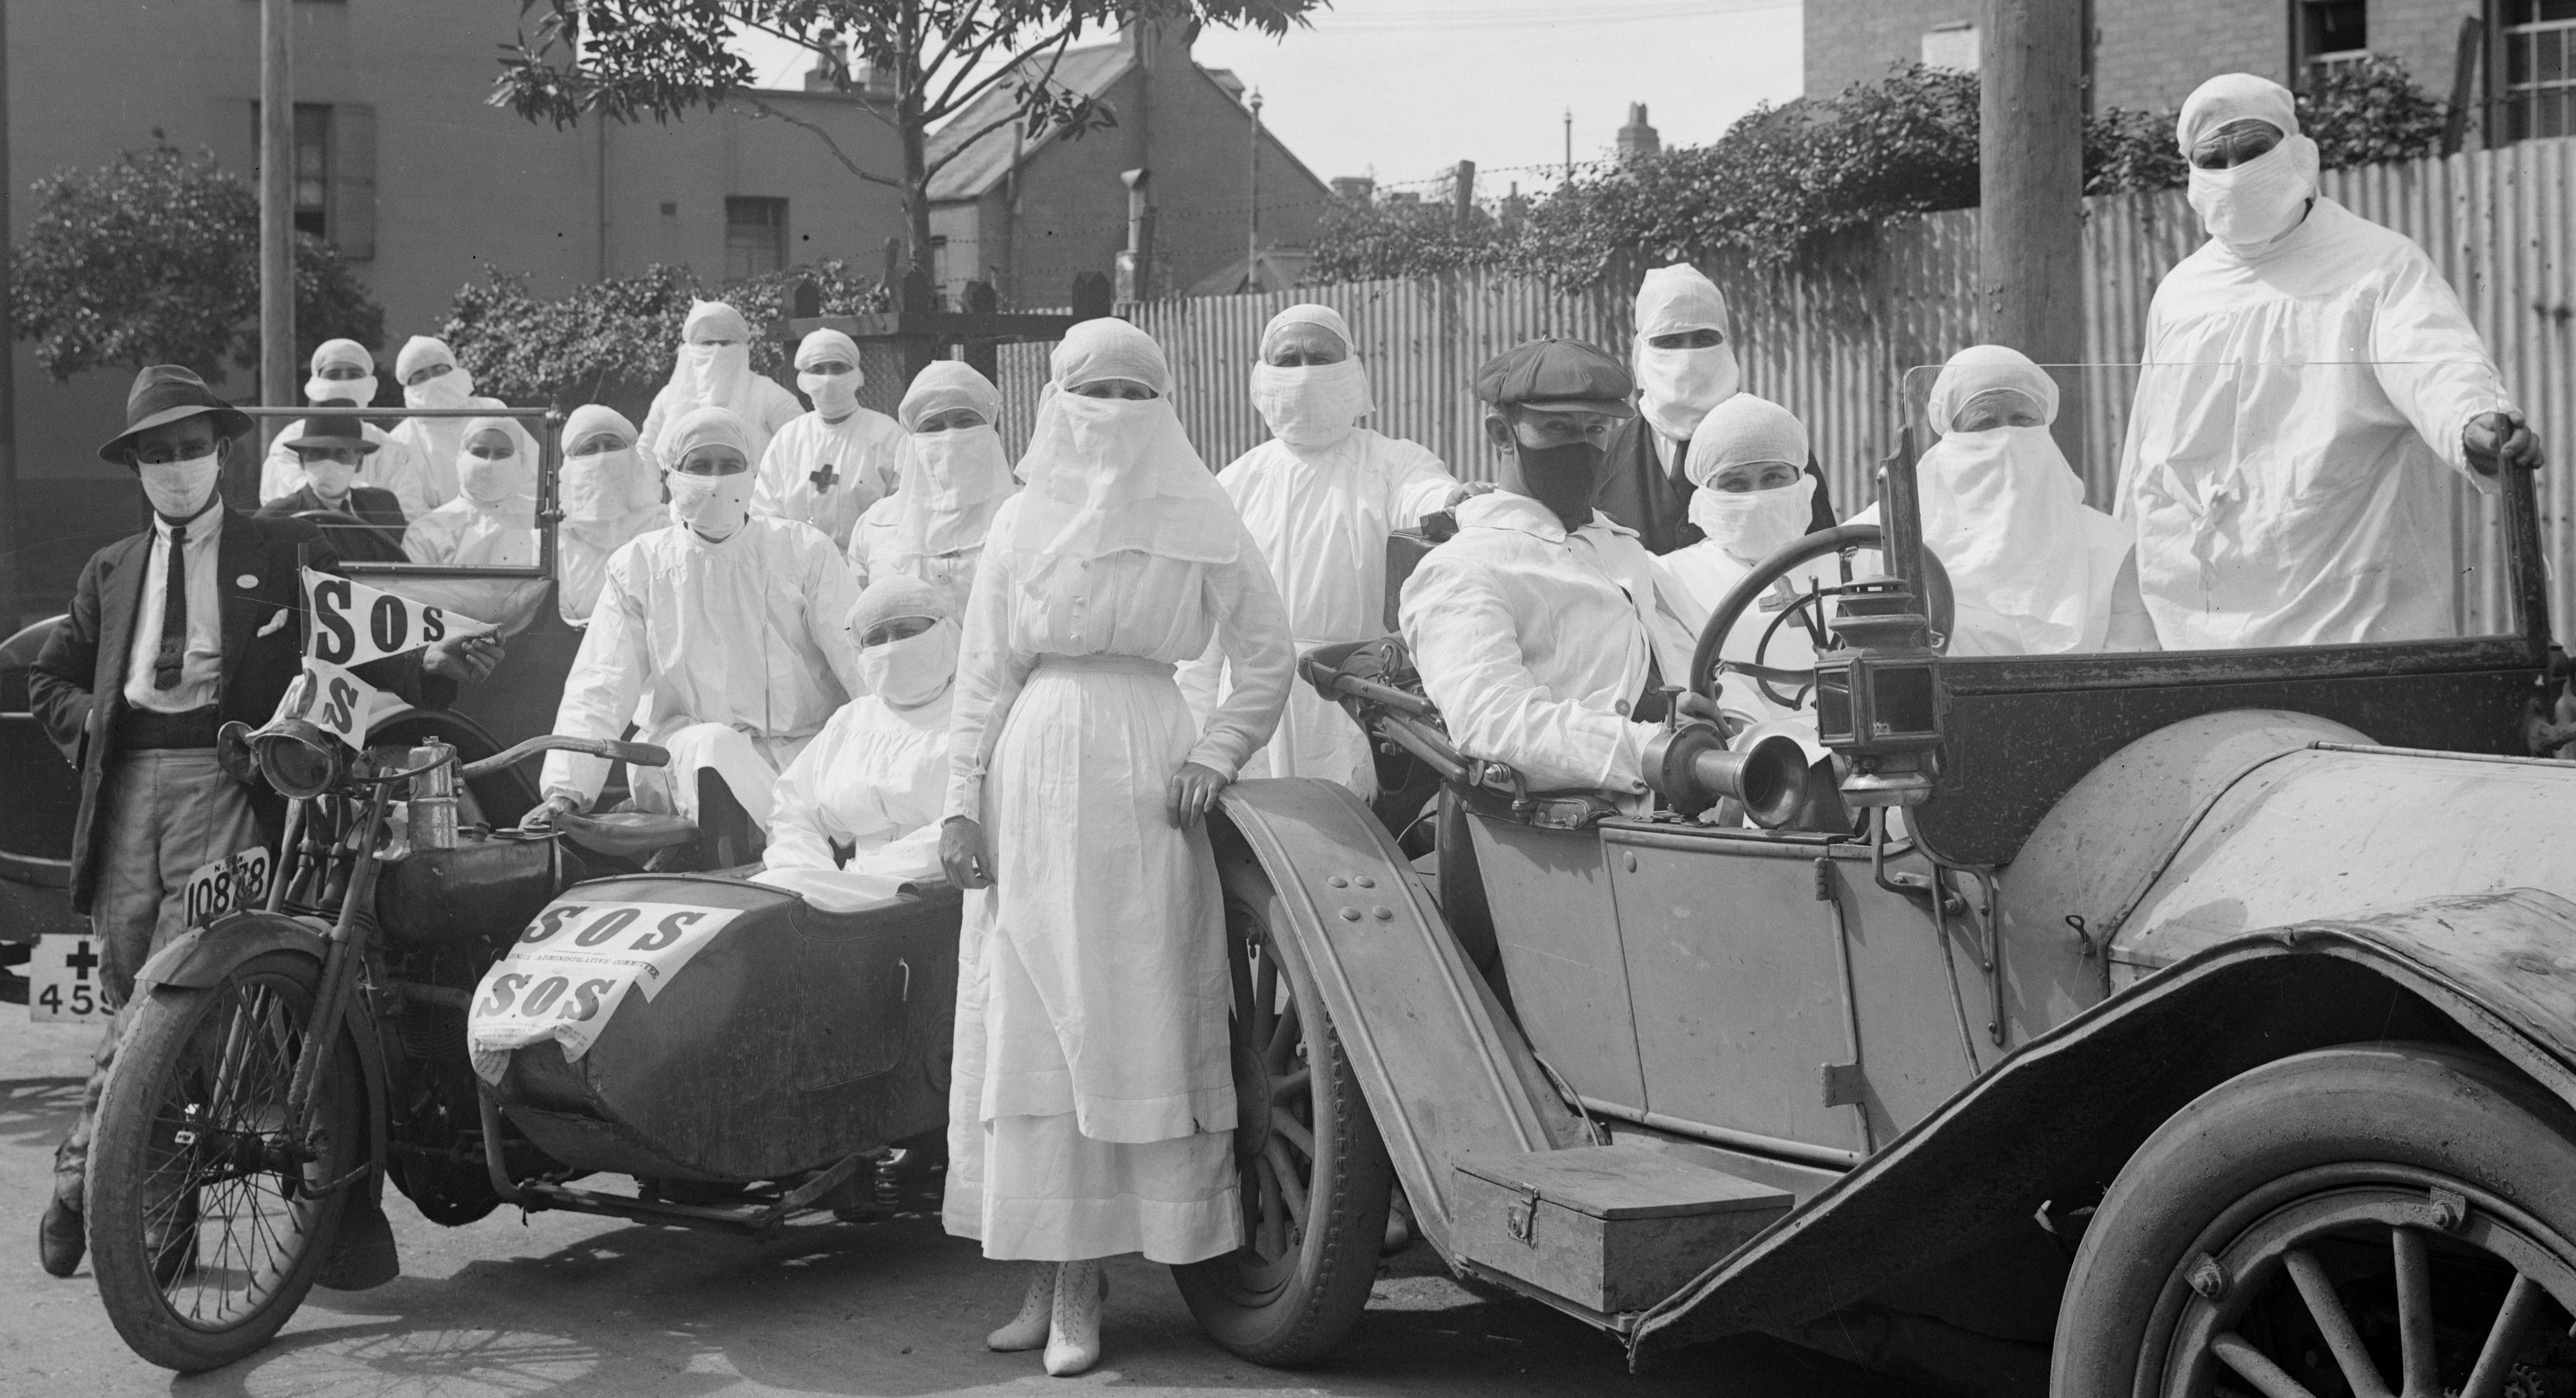 Medical depot staff, 1919 influenza pandemic. Source: NSW State Archives and Records